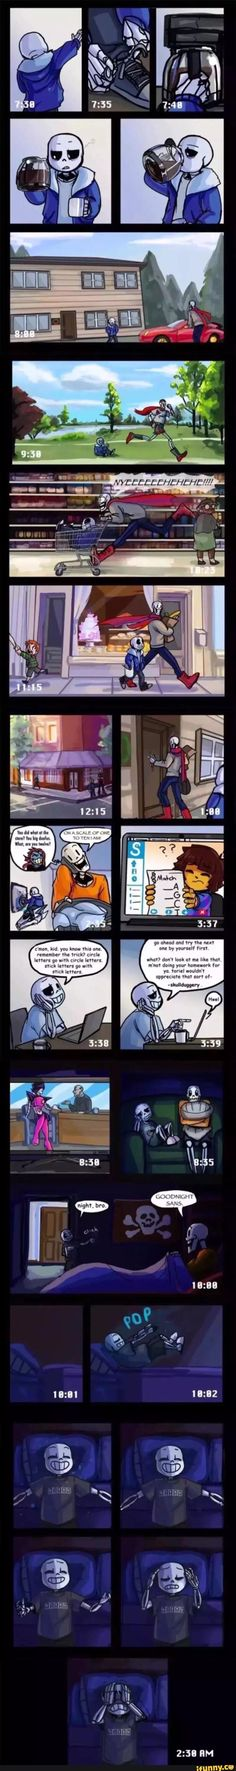 "Sans, Papyrus, Toriel, Frisk, Undertale Check out the link Ashia Wortham put, ""Hey guys this is a comic by wilyart called Insomnia"" here is the link http://wilyart.tumblr.com/tagged/insomnia-comic/chrono         It will explain a lot more, if you were confuse about the ending part of the comic"